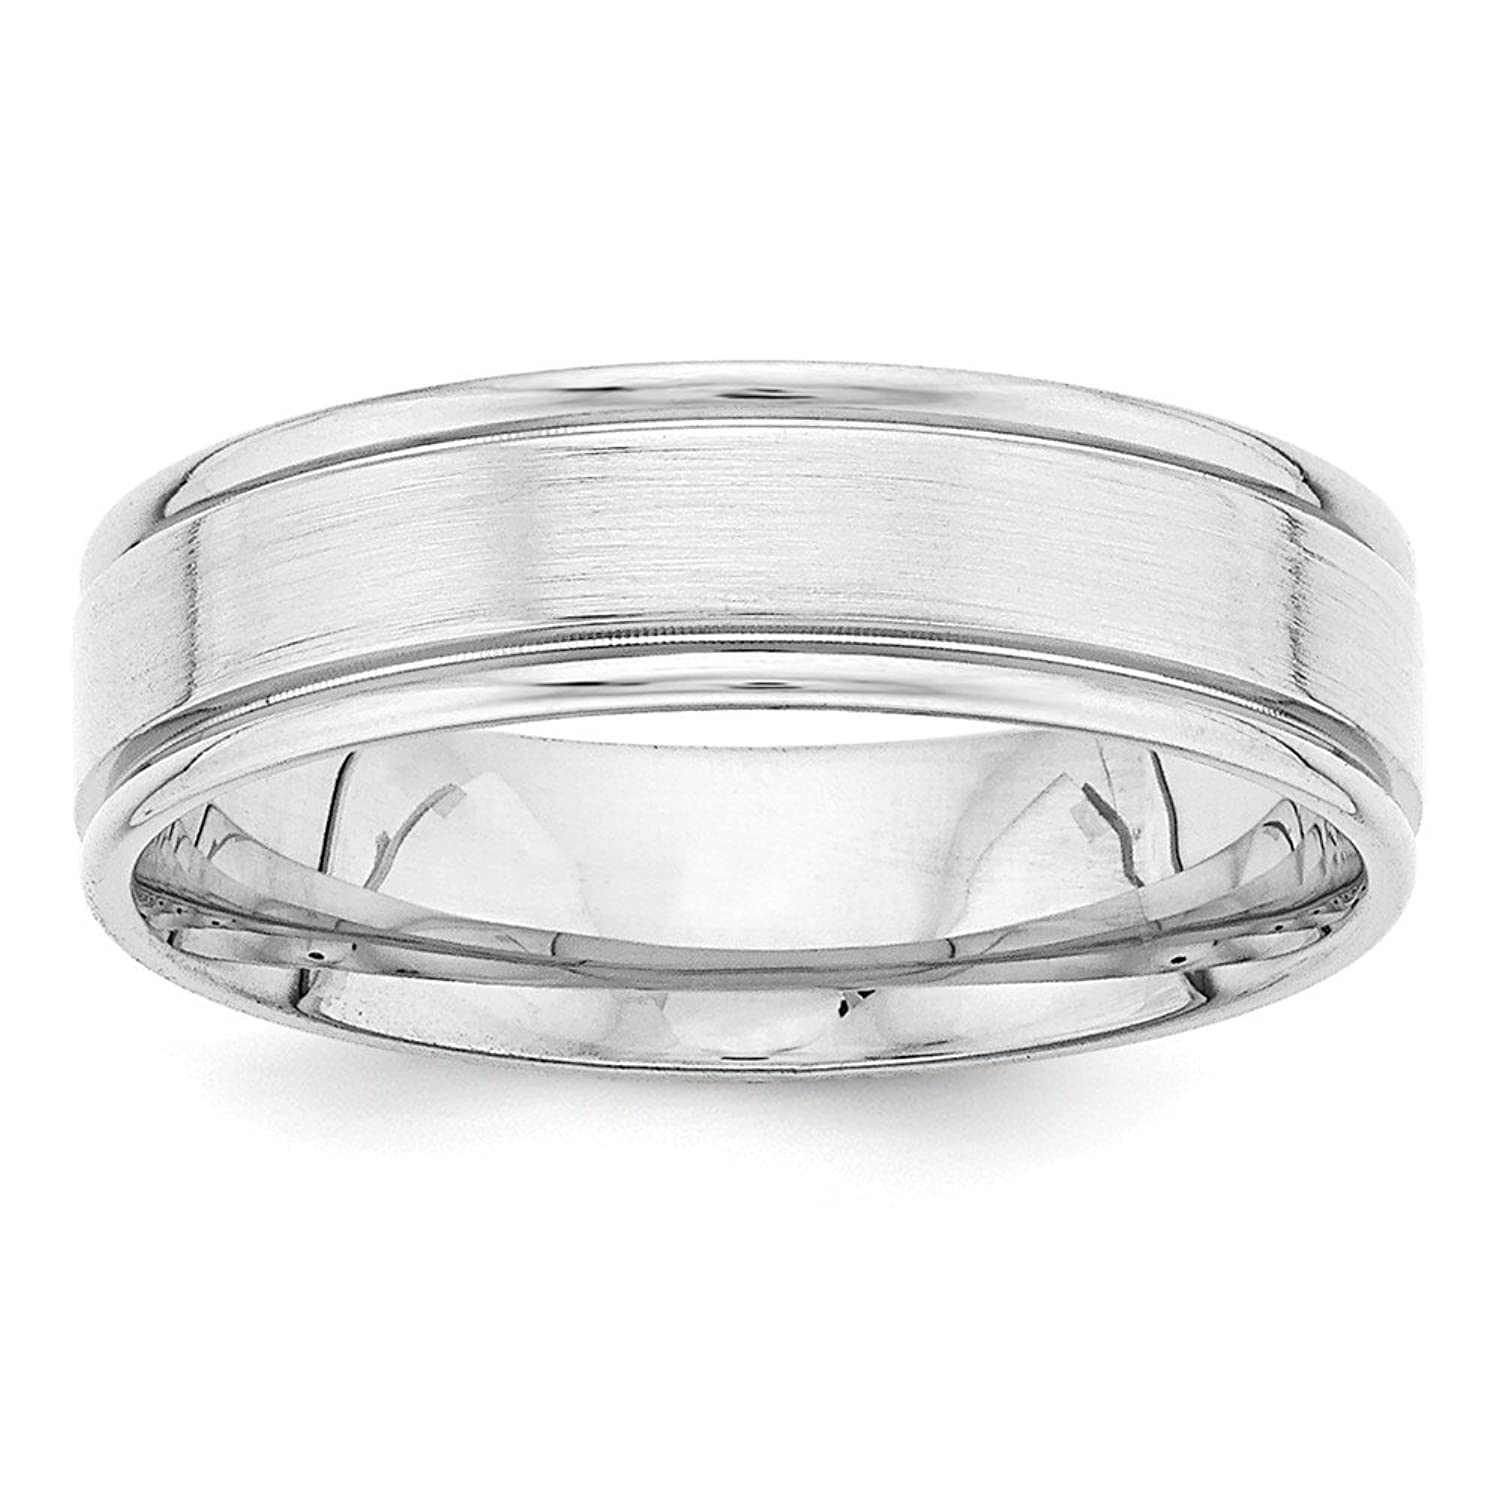 Solid 14k White Gold Heavy Comfort Fit Fancy Band Finger Size 8